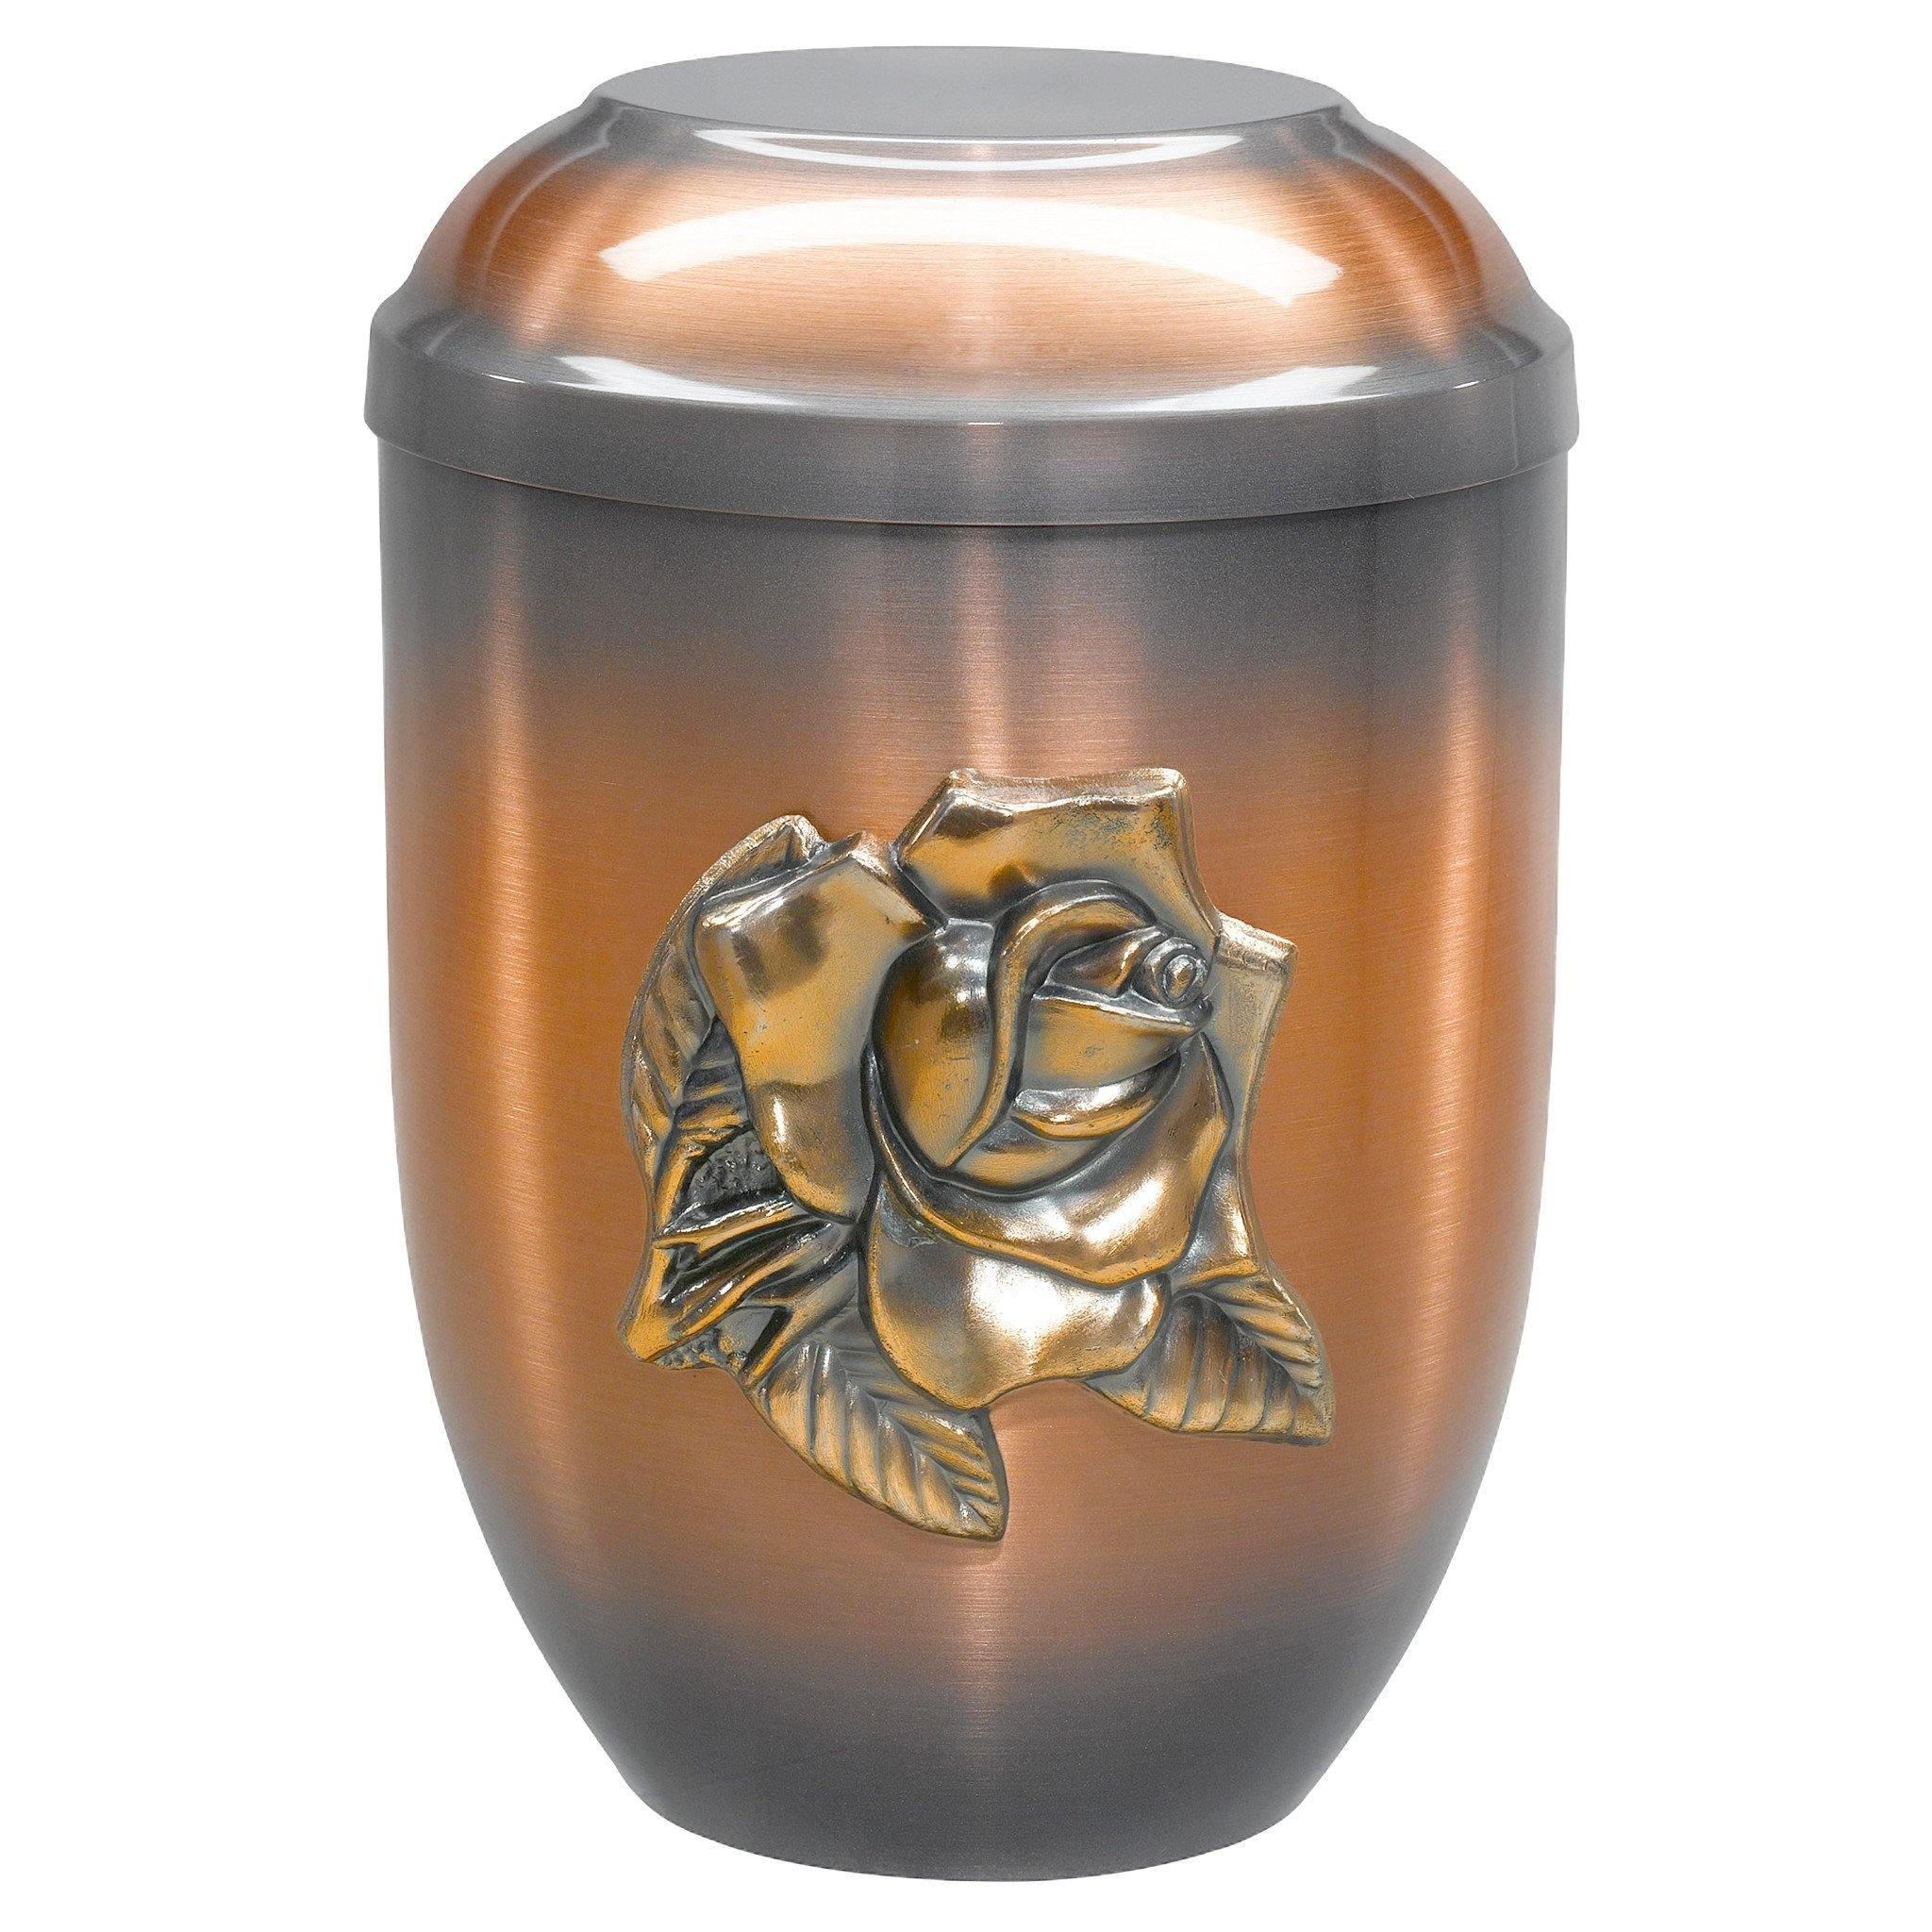 Cromer Rose Cremation Ashes Urn - Urns UK